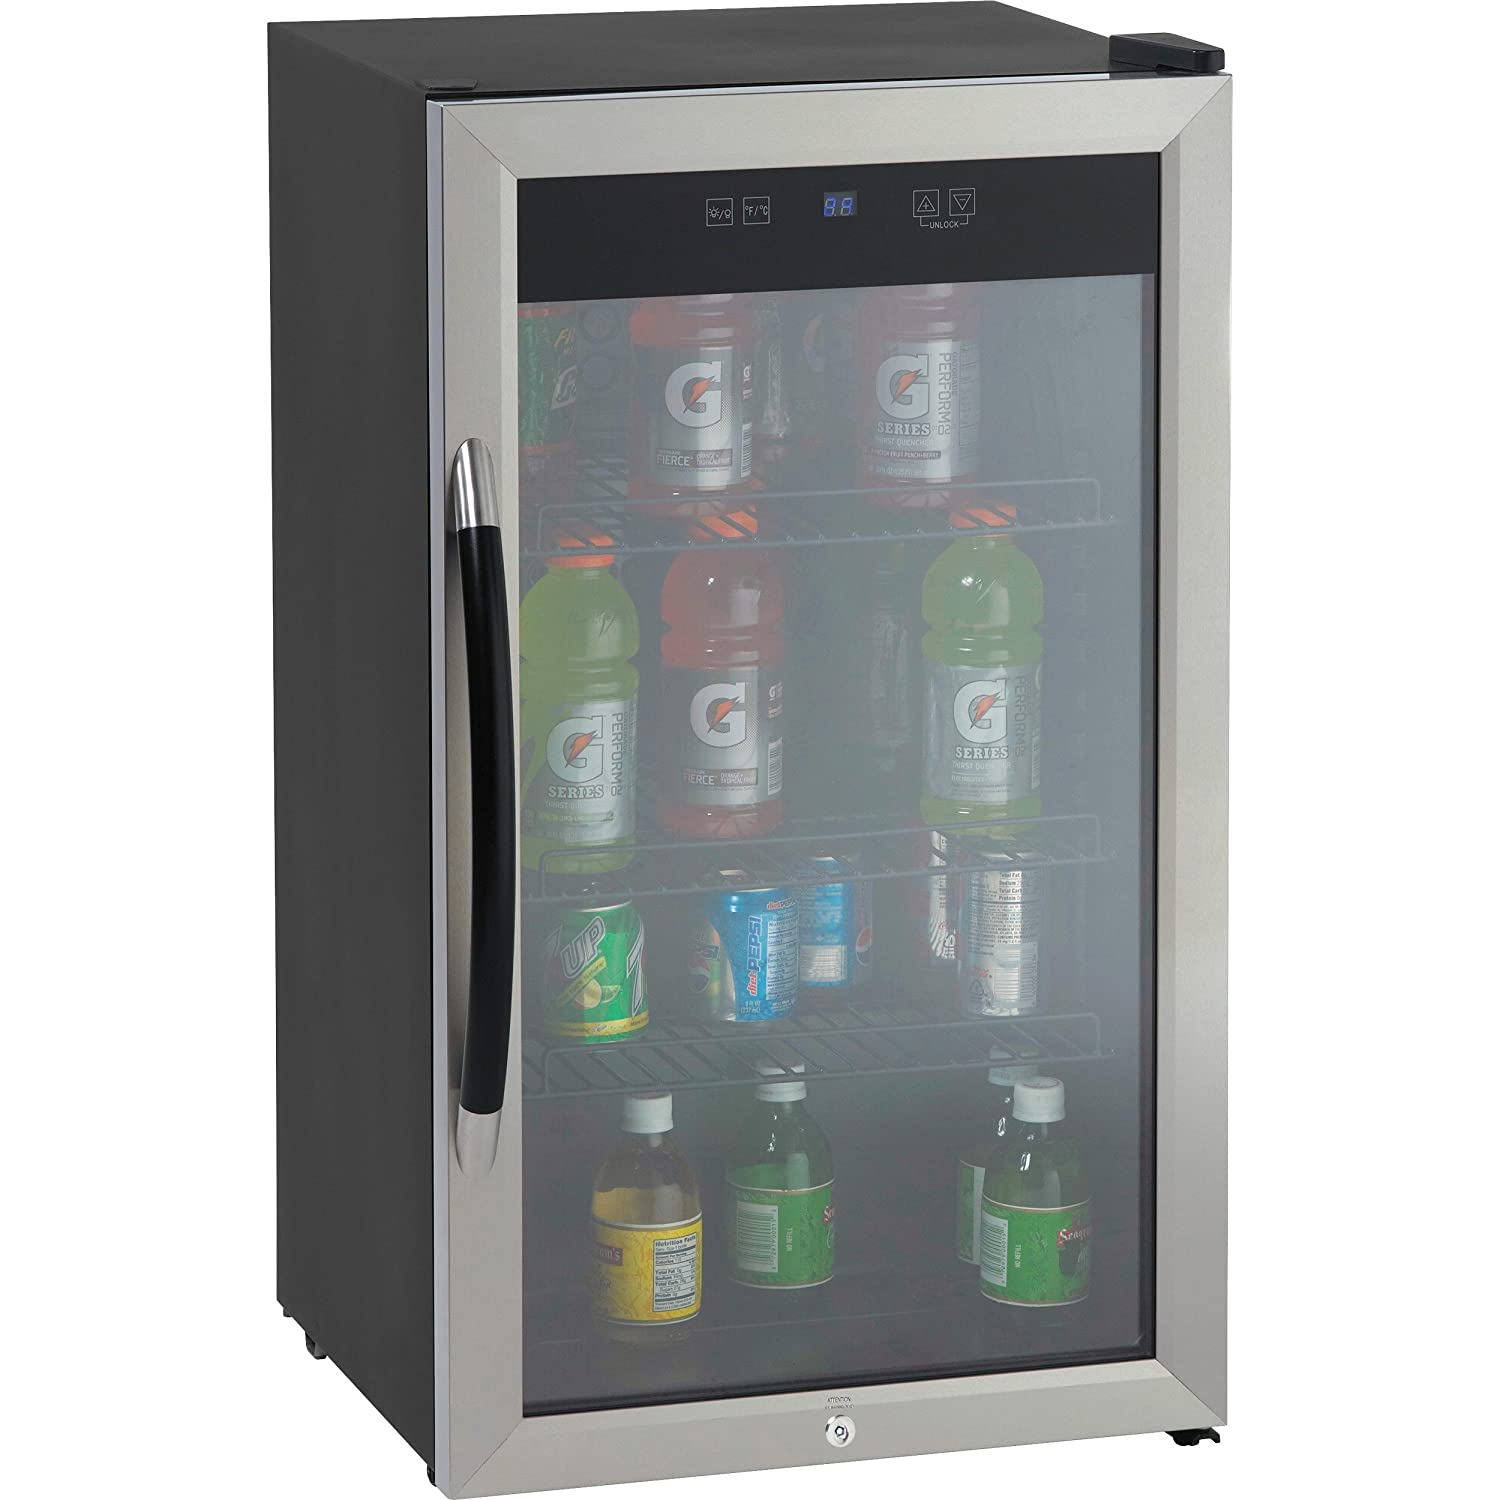 Avanti Beverage Cooler, 3 Cubic Feet